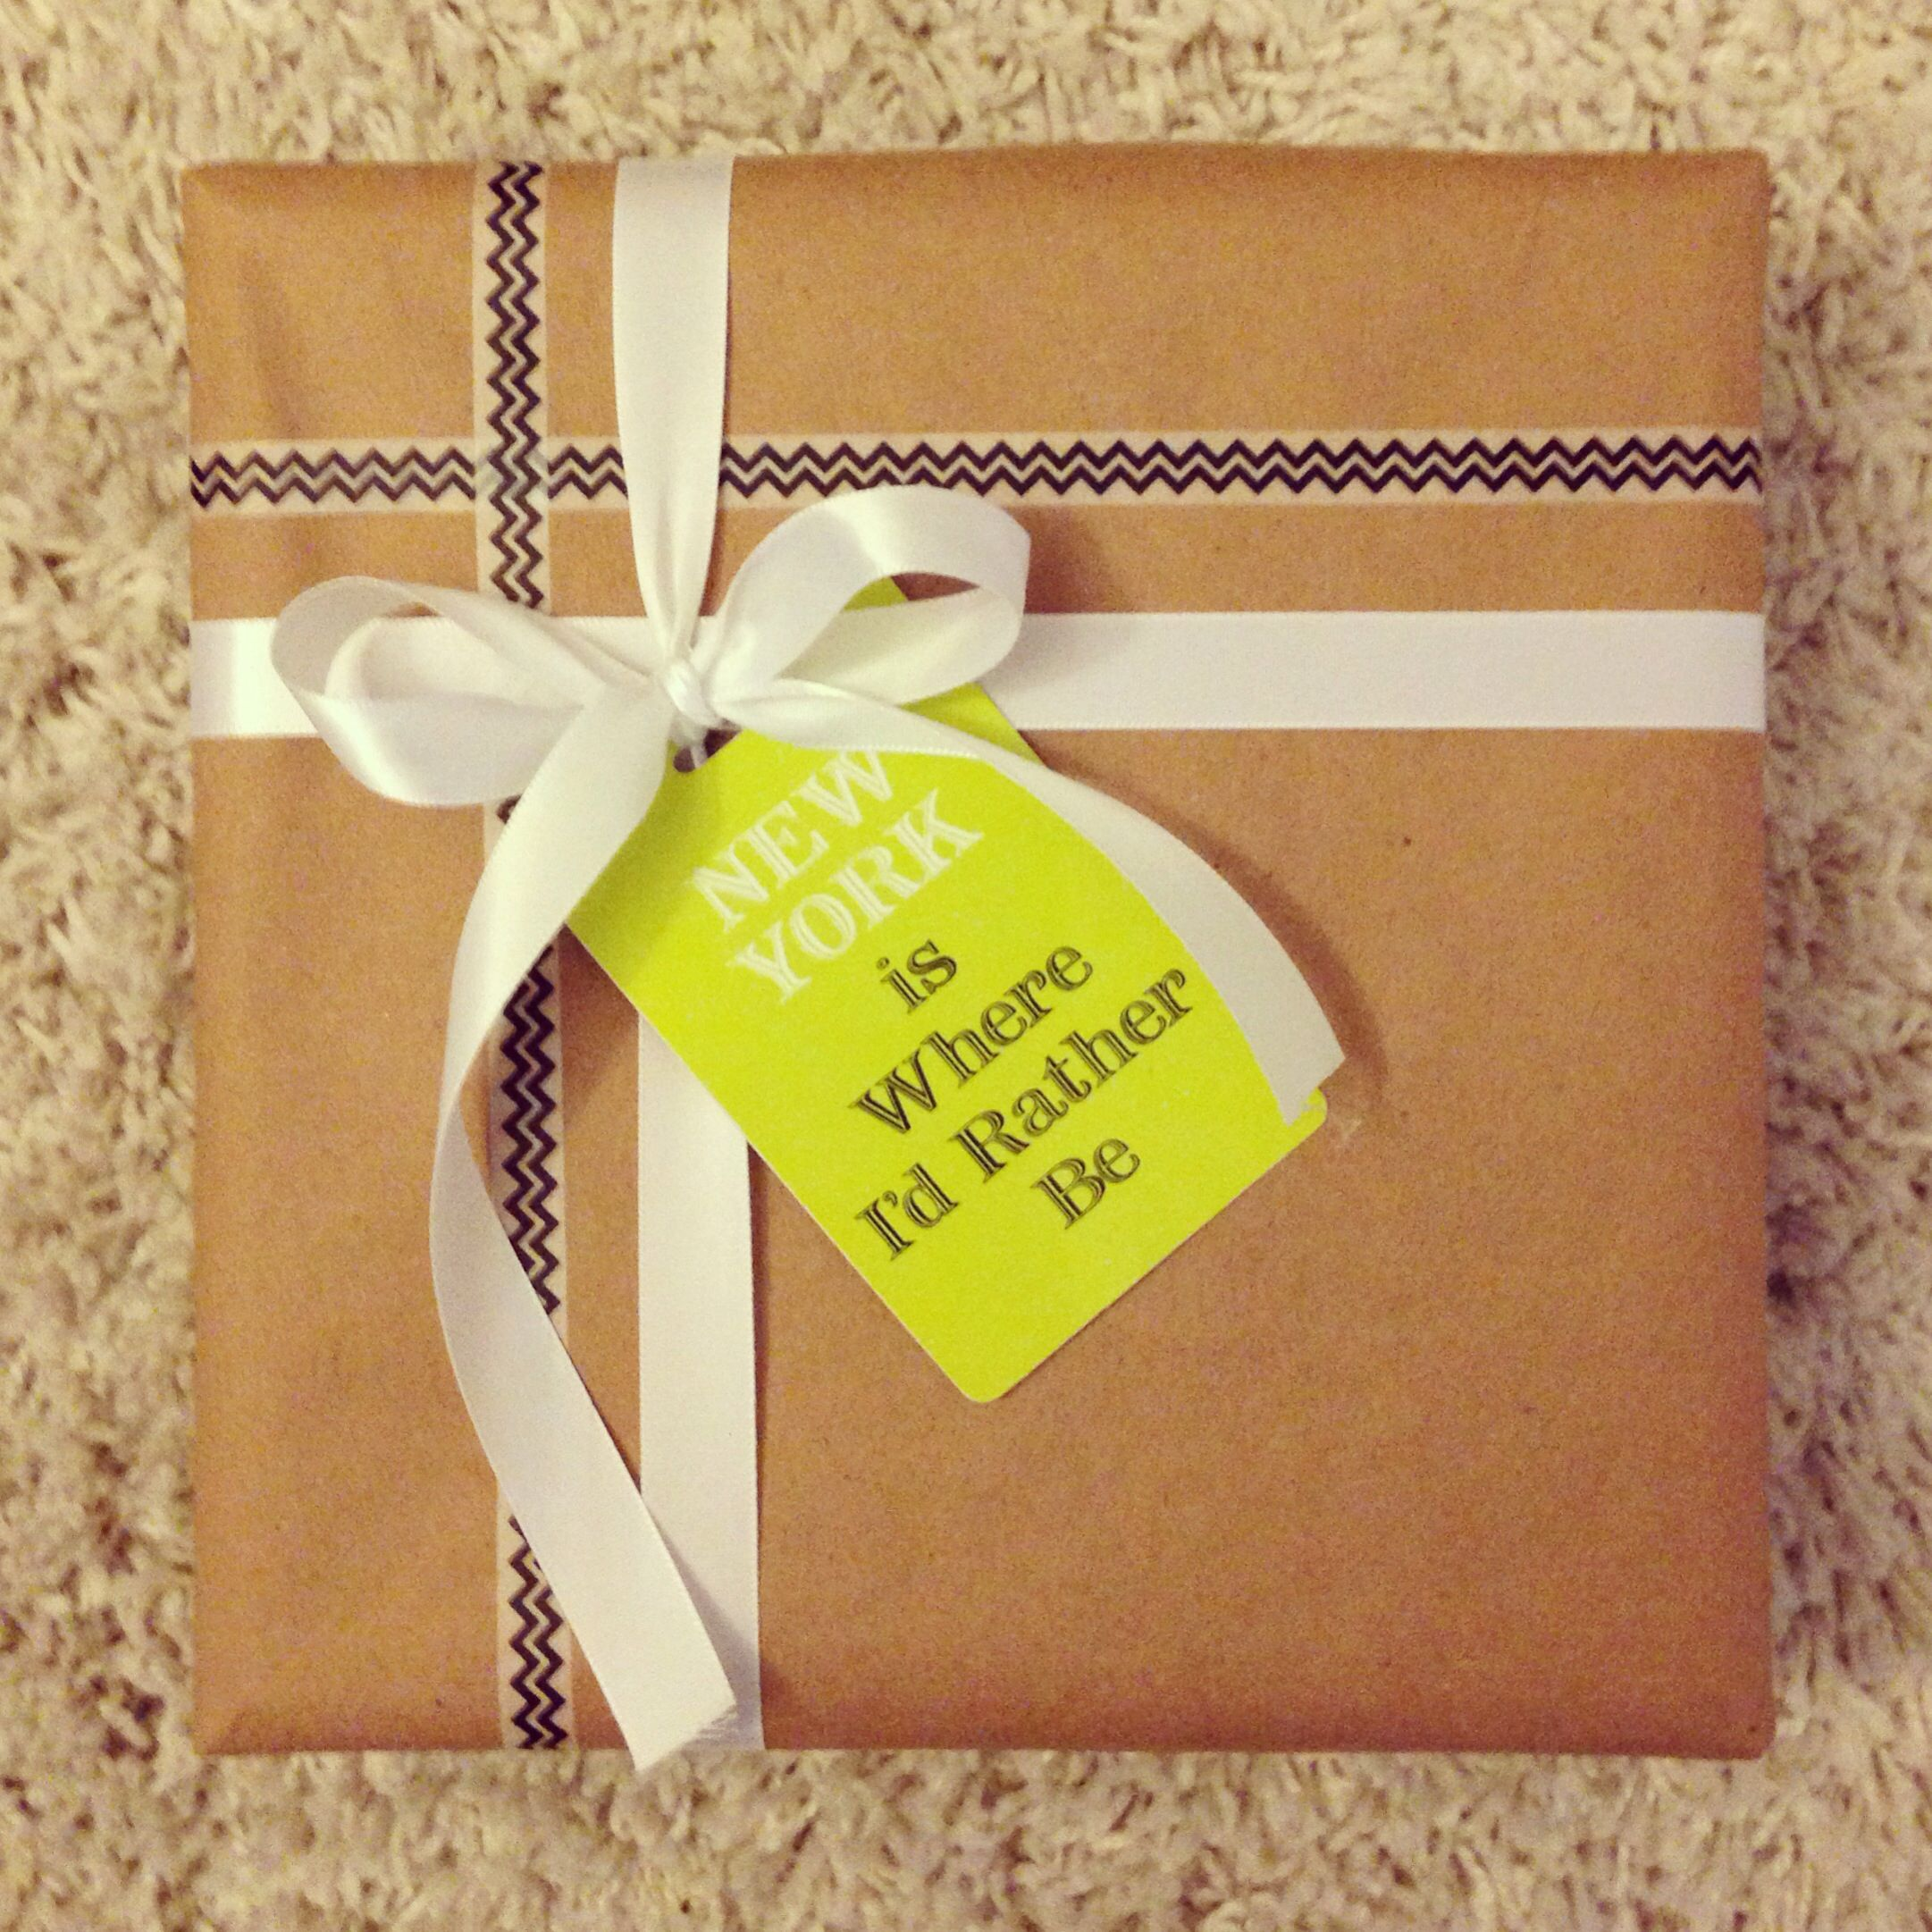 Brown craft paper+ washi tape+ a luggage tag= simple, pretty wrapping